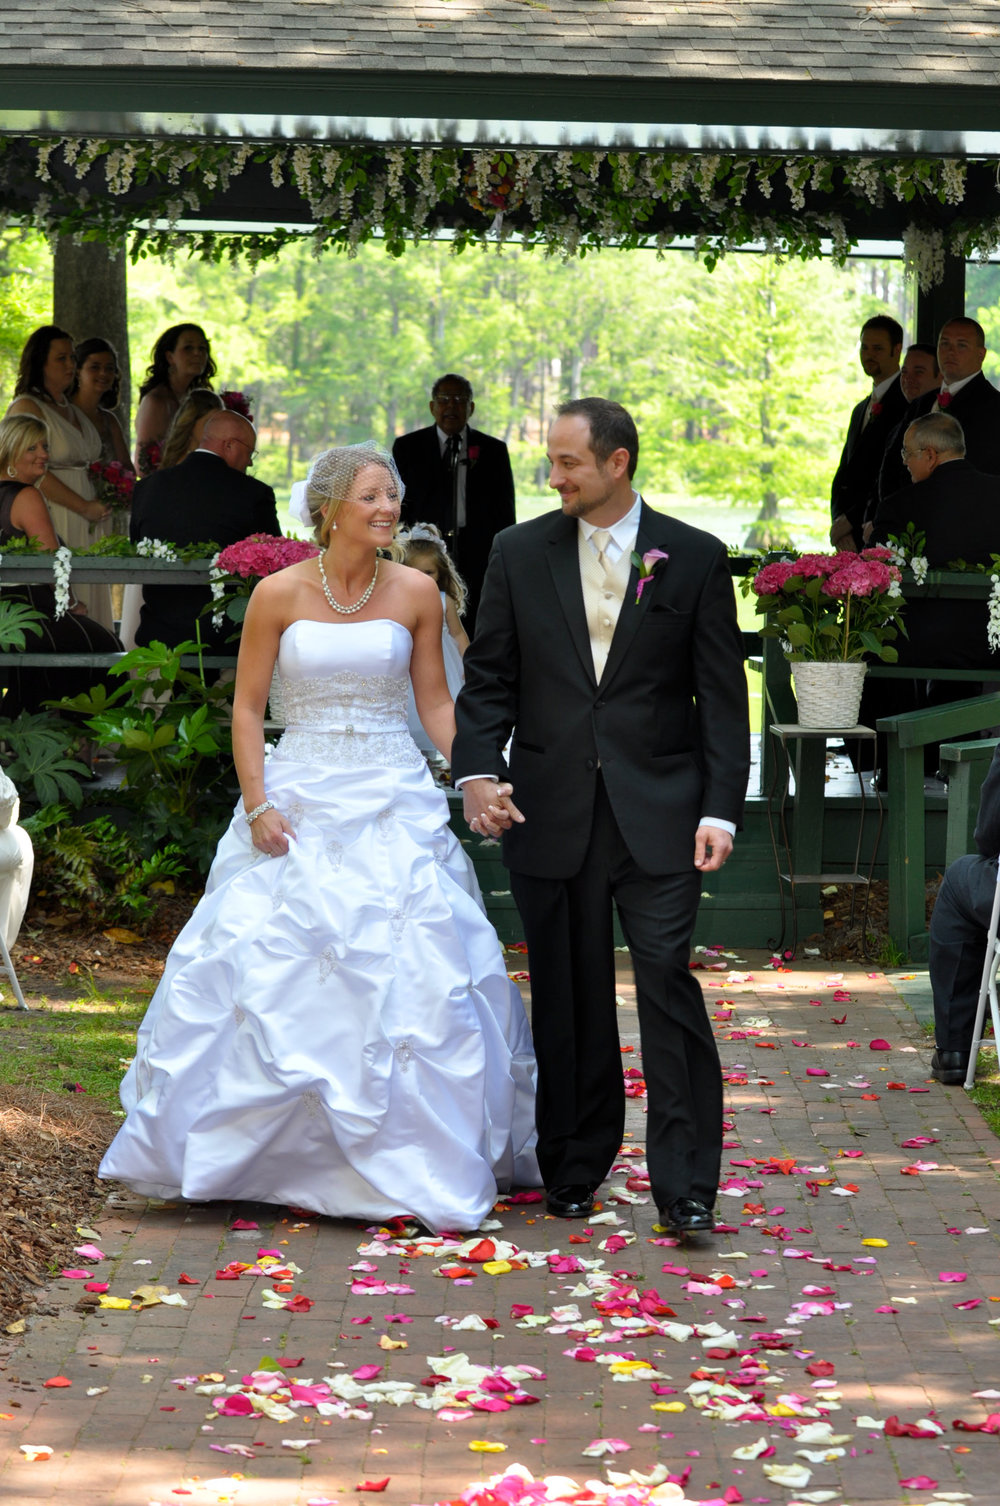 - Married. Walking up the aisle at the Fragrance Garden in Greenfield Lake in Wilmington, NC. Billy Beach Photography. Affordable wedding.